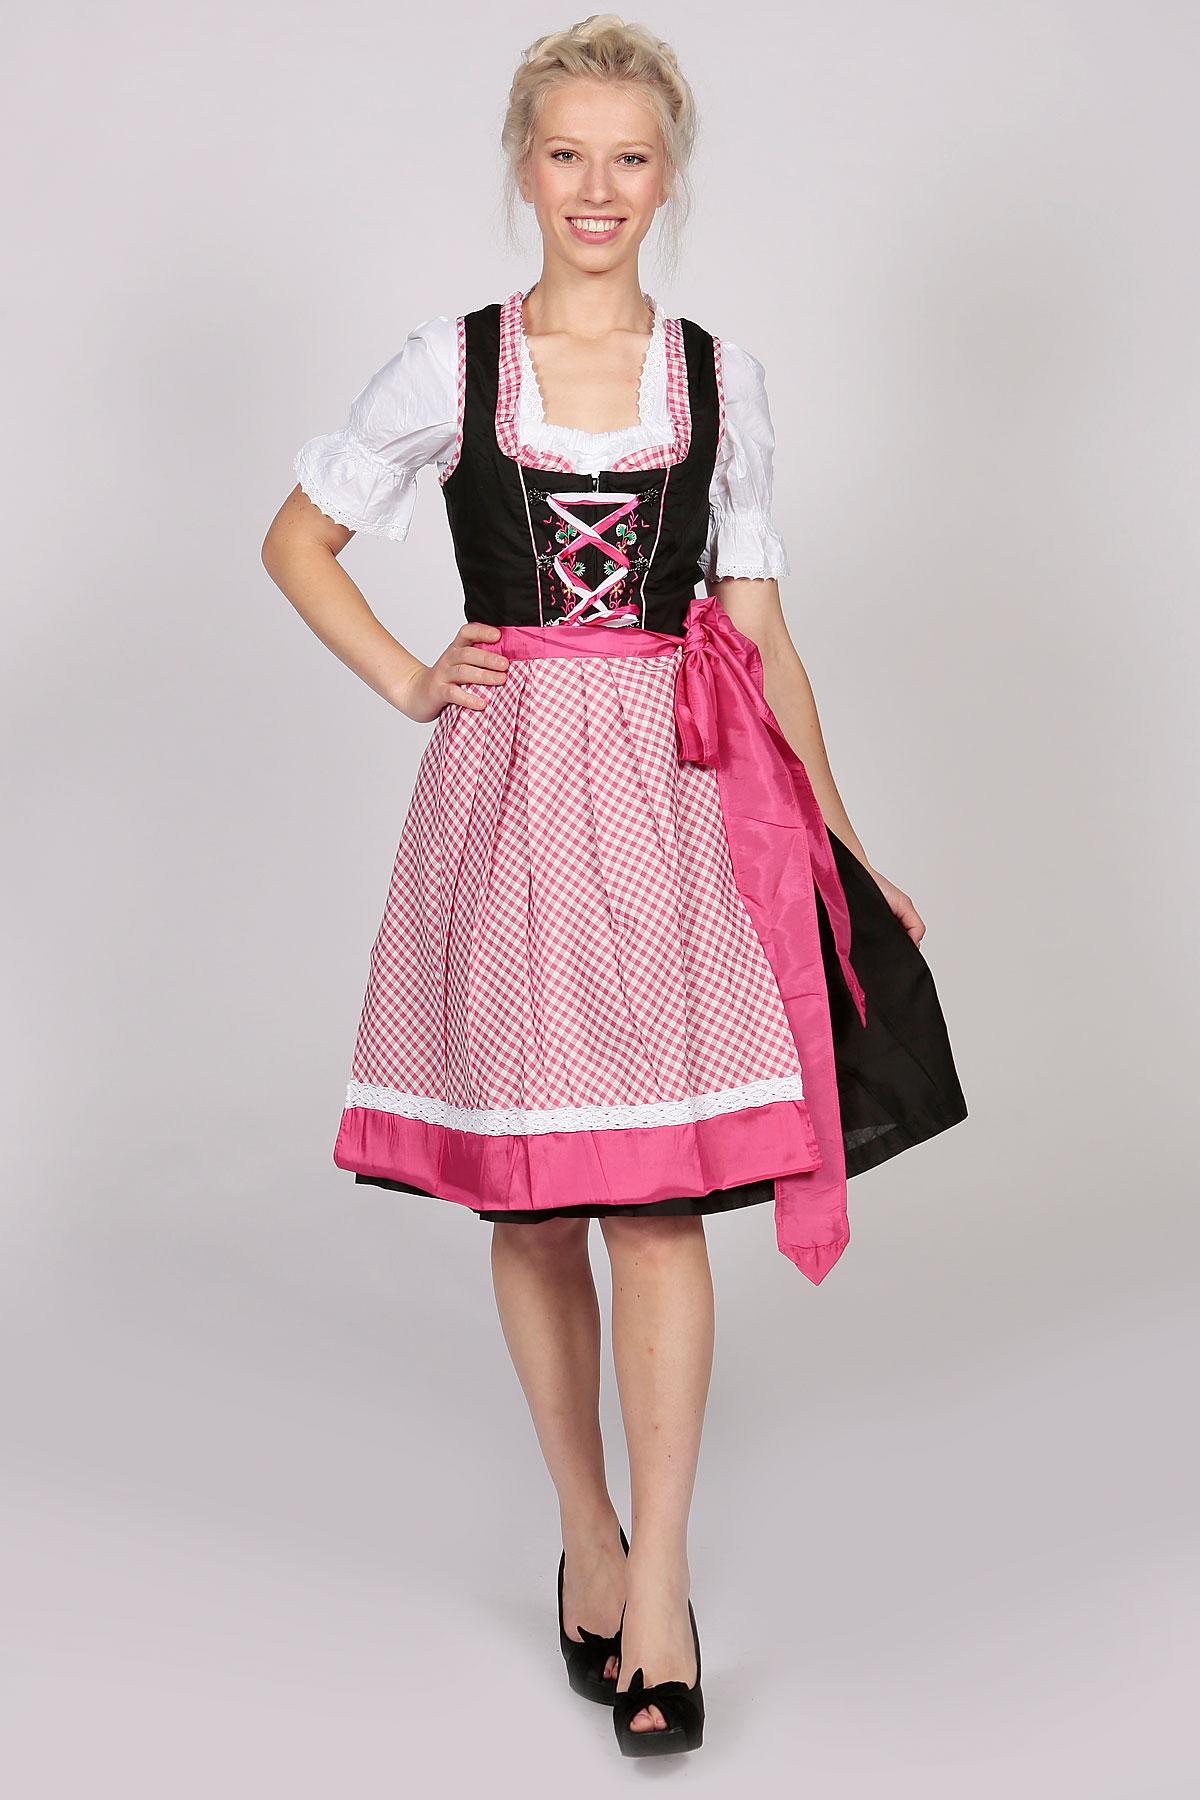 German Dirndl Dress Amara Black Pink - Lederhosen Store